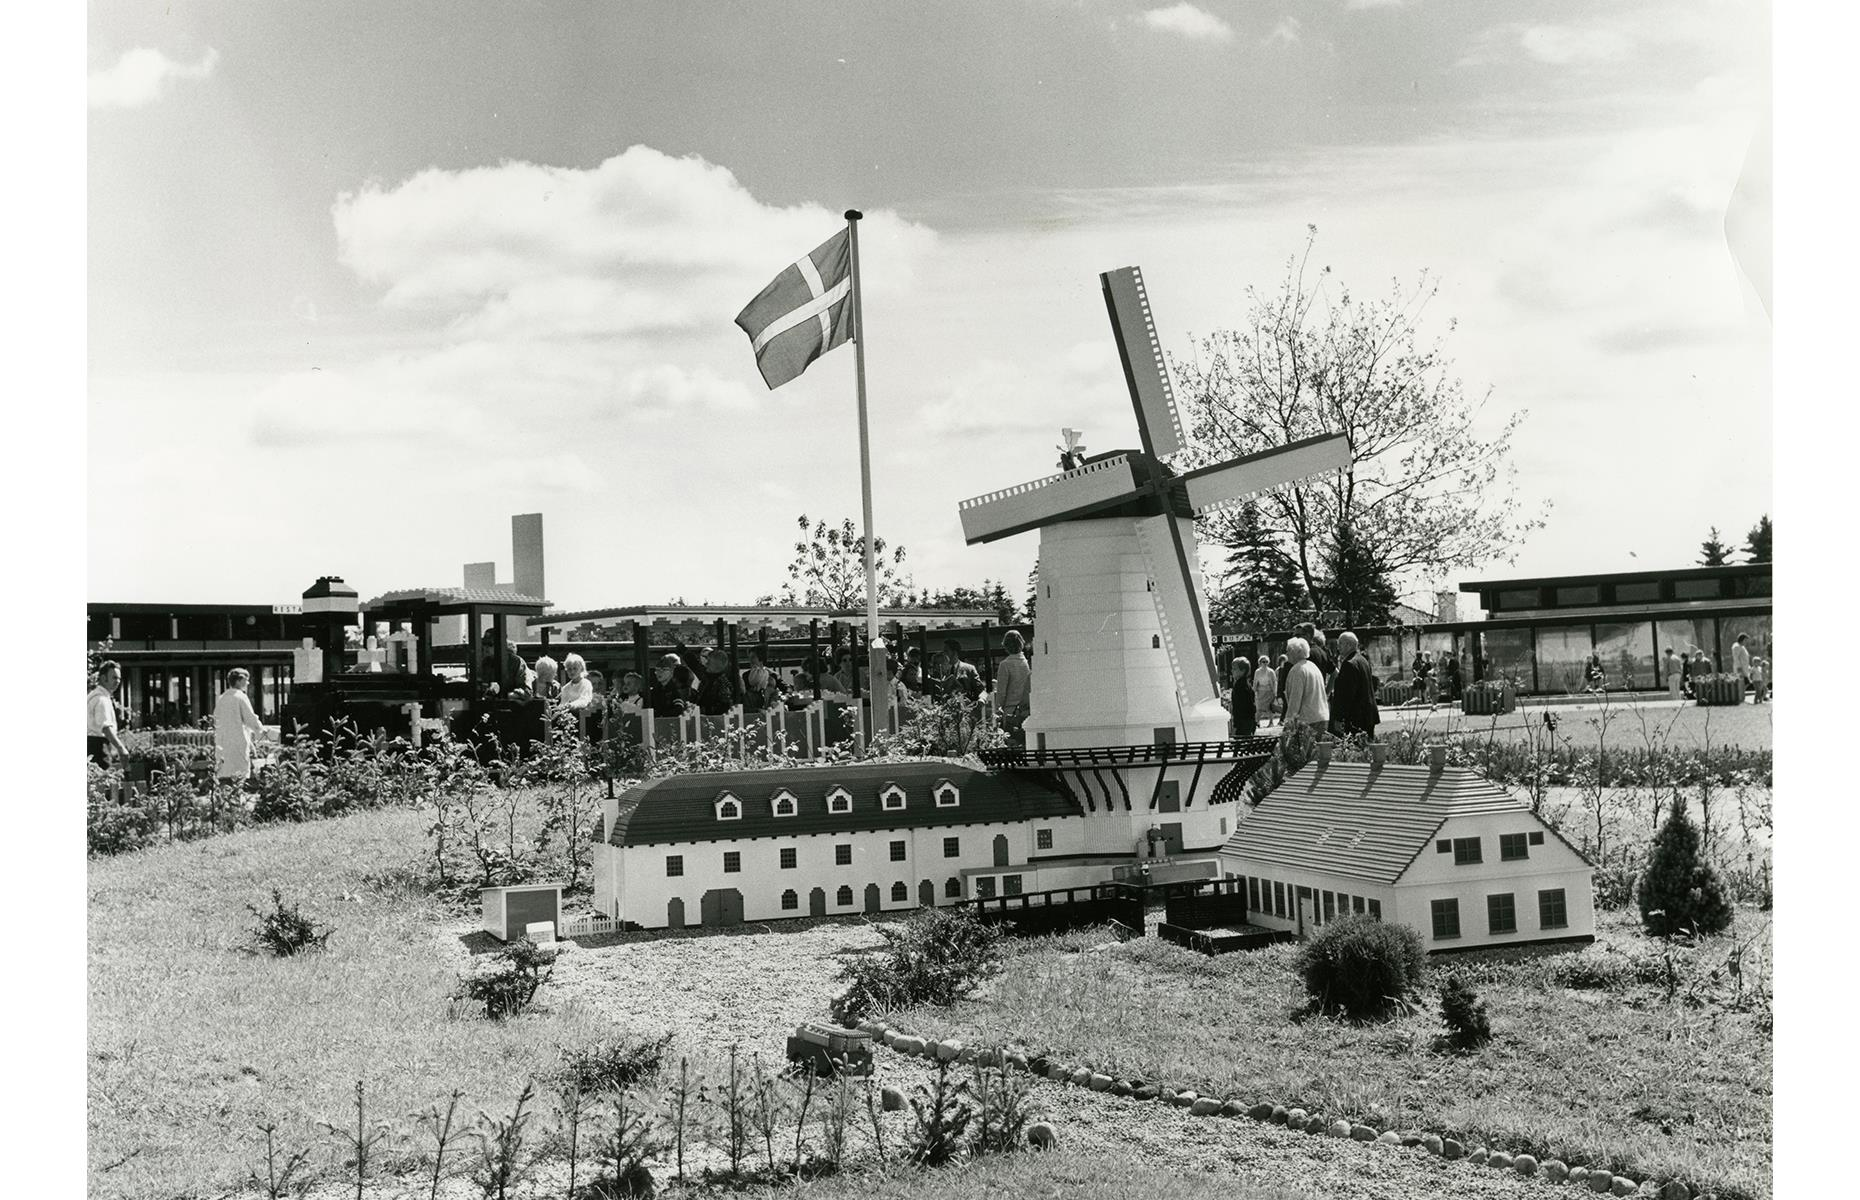 Slide 20 of 35: From the very beginning, Legoland's intricate models made from rainbow blocks pleased visitors. In this picture from 1968, guests marvel at a Lego replica of Denmark's Dybbøl Mølle windmill as the Lego train rumbles along in the background.